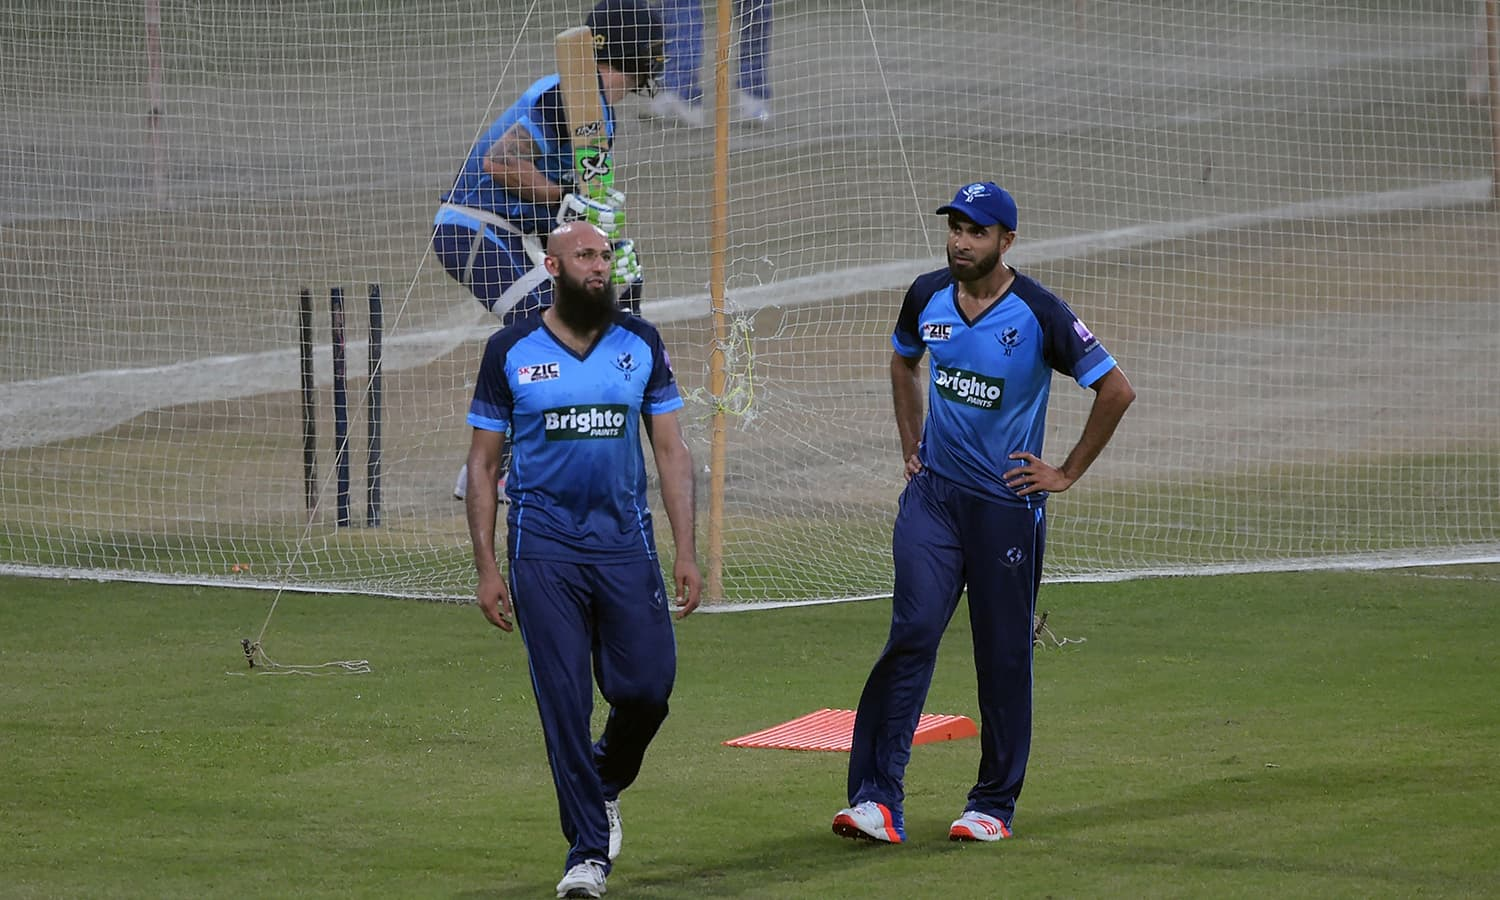 World XI cricketers Hashim Amla (L) and Imran Tahir (R) take part in a practice session at the Gaddafi Stadium in Lahore.— AFP